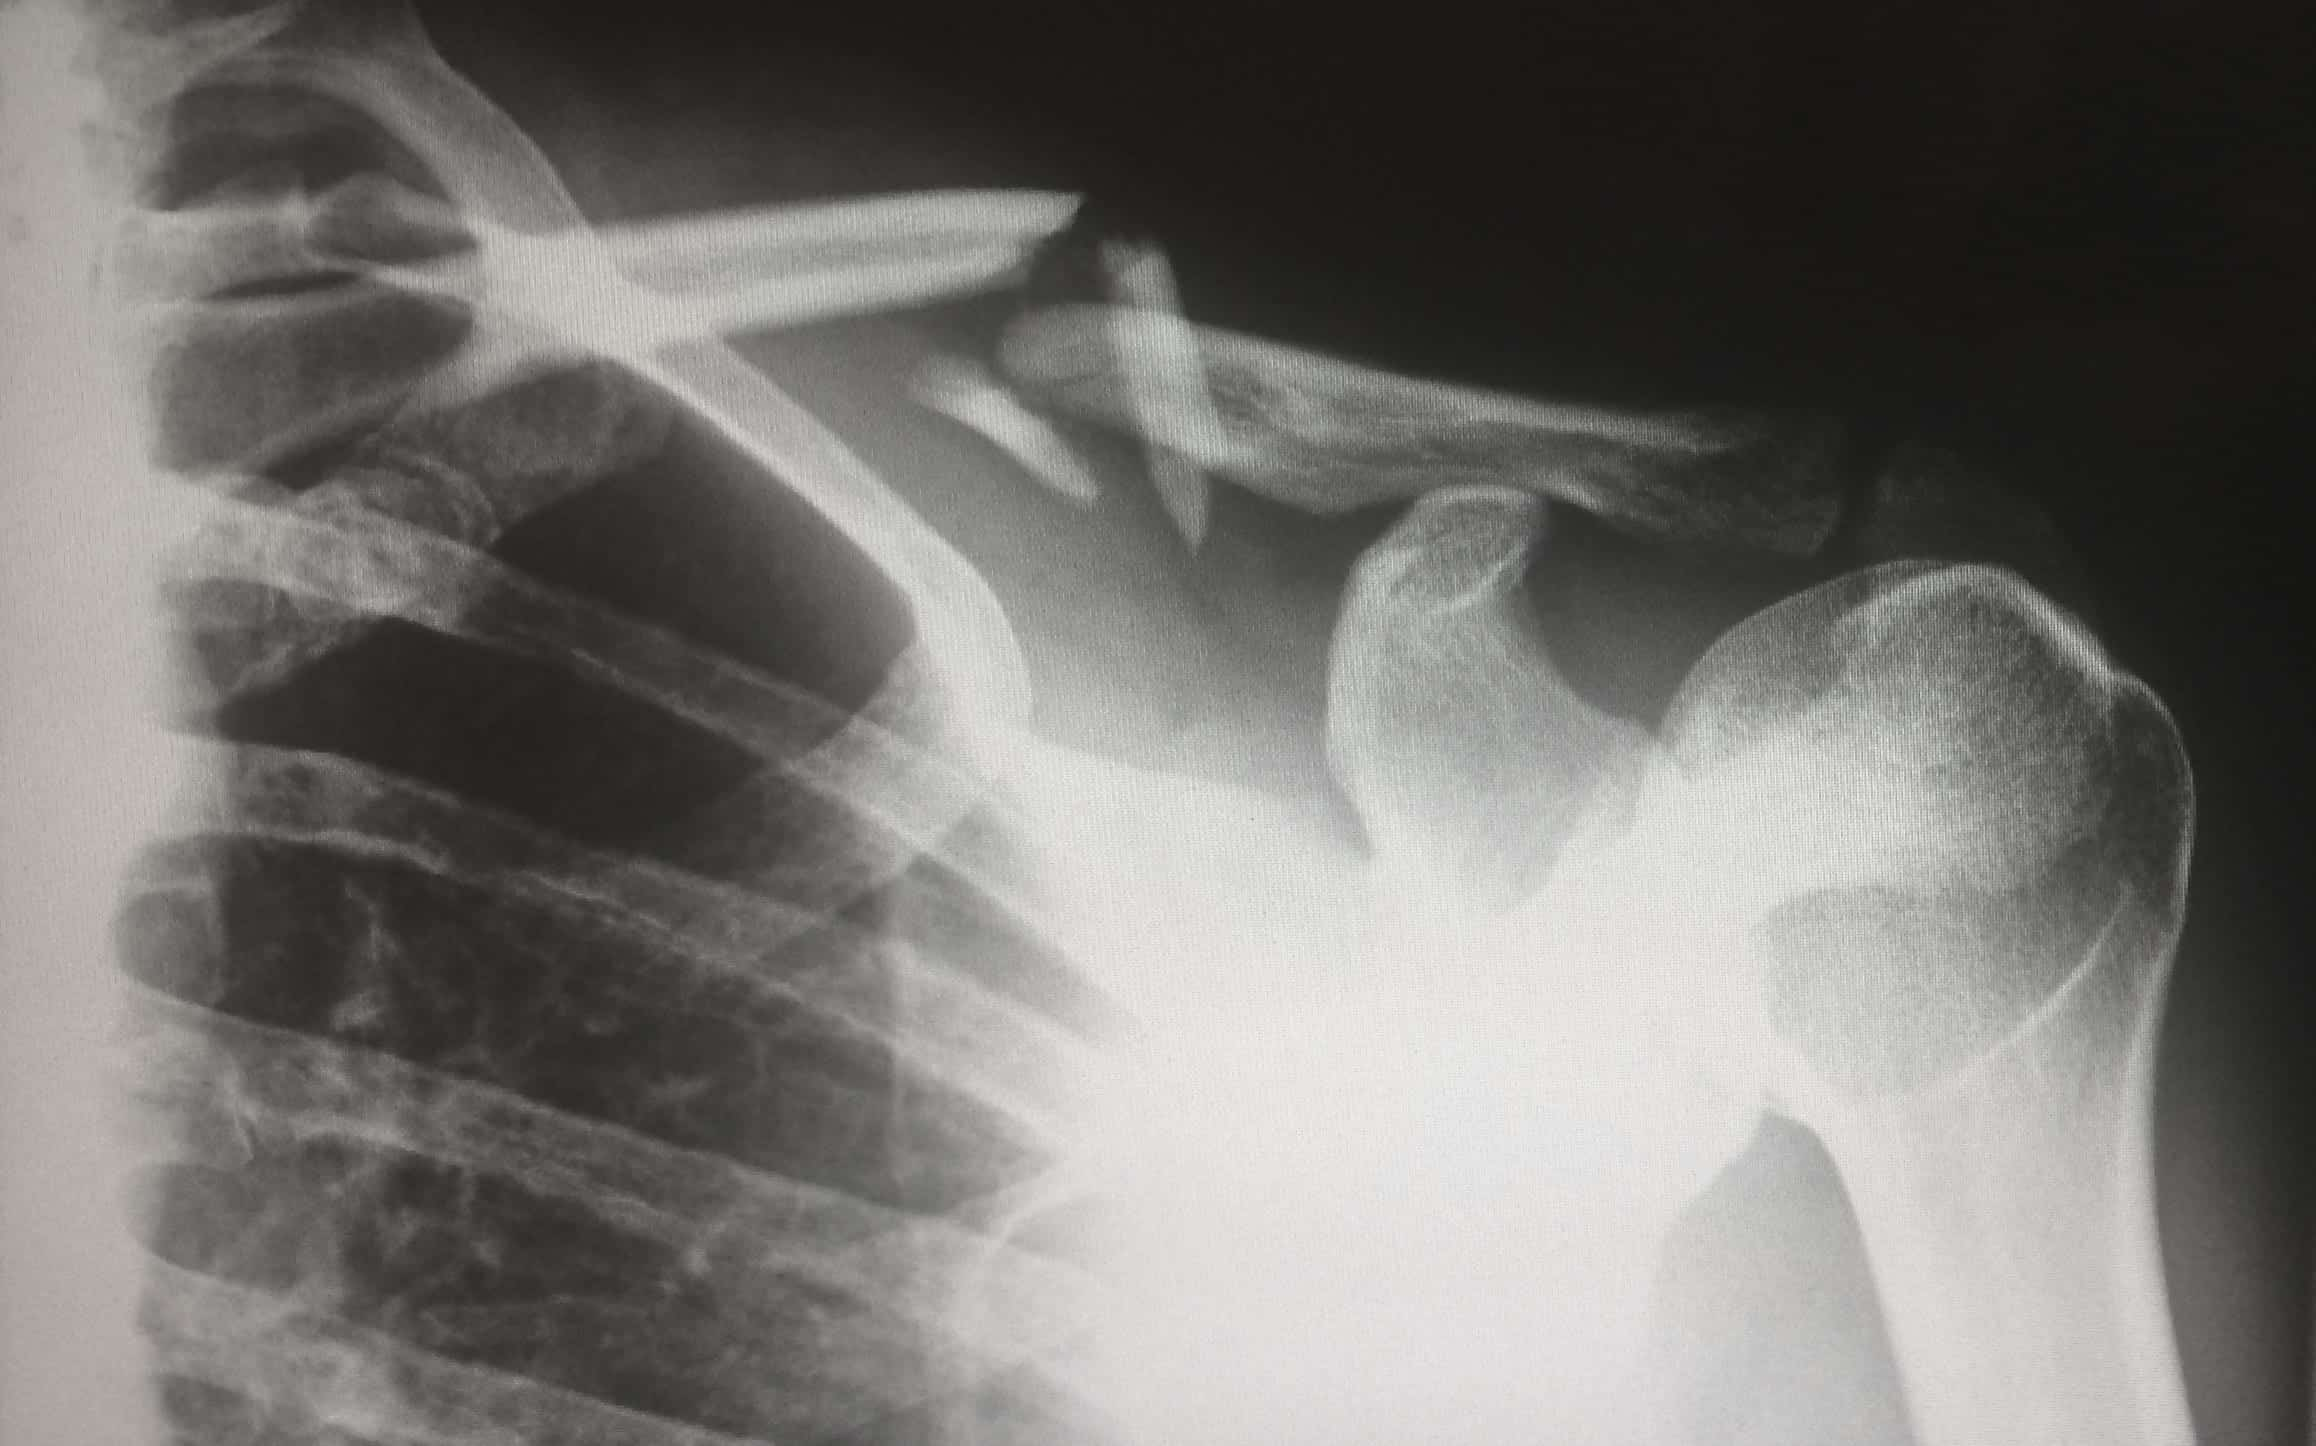 X-ray showing broken clavicle; image by Harlie Raethel, via unsplash.com.